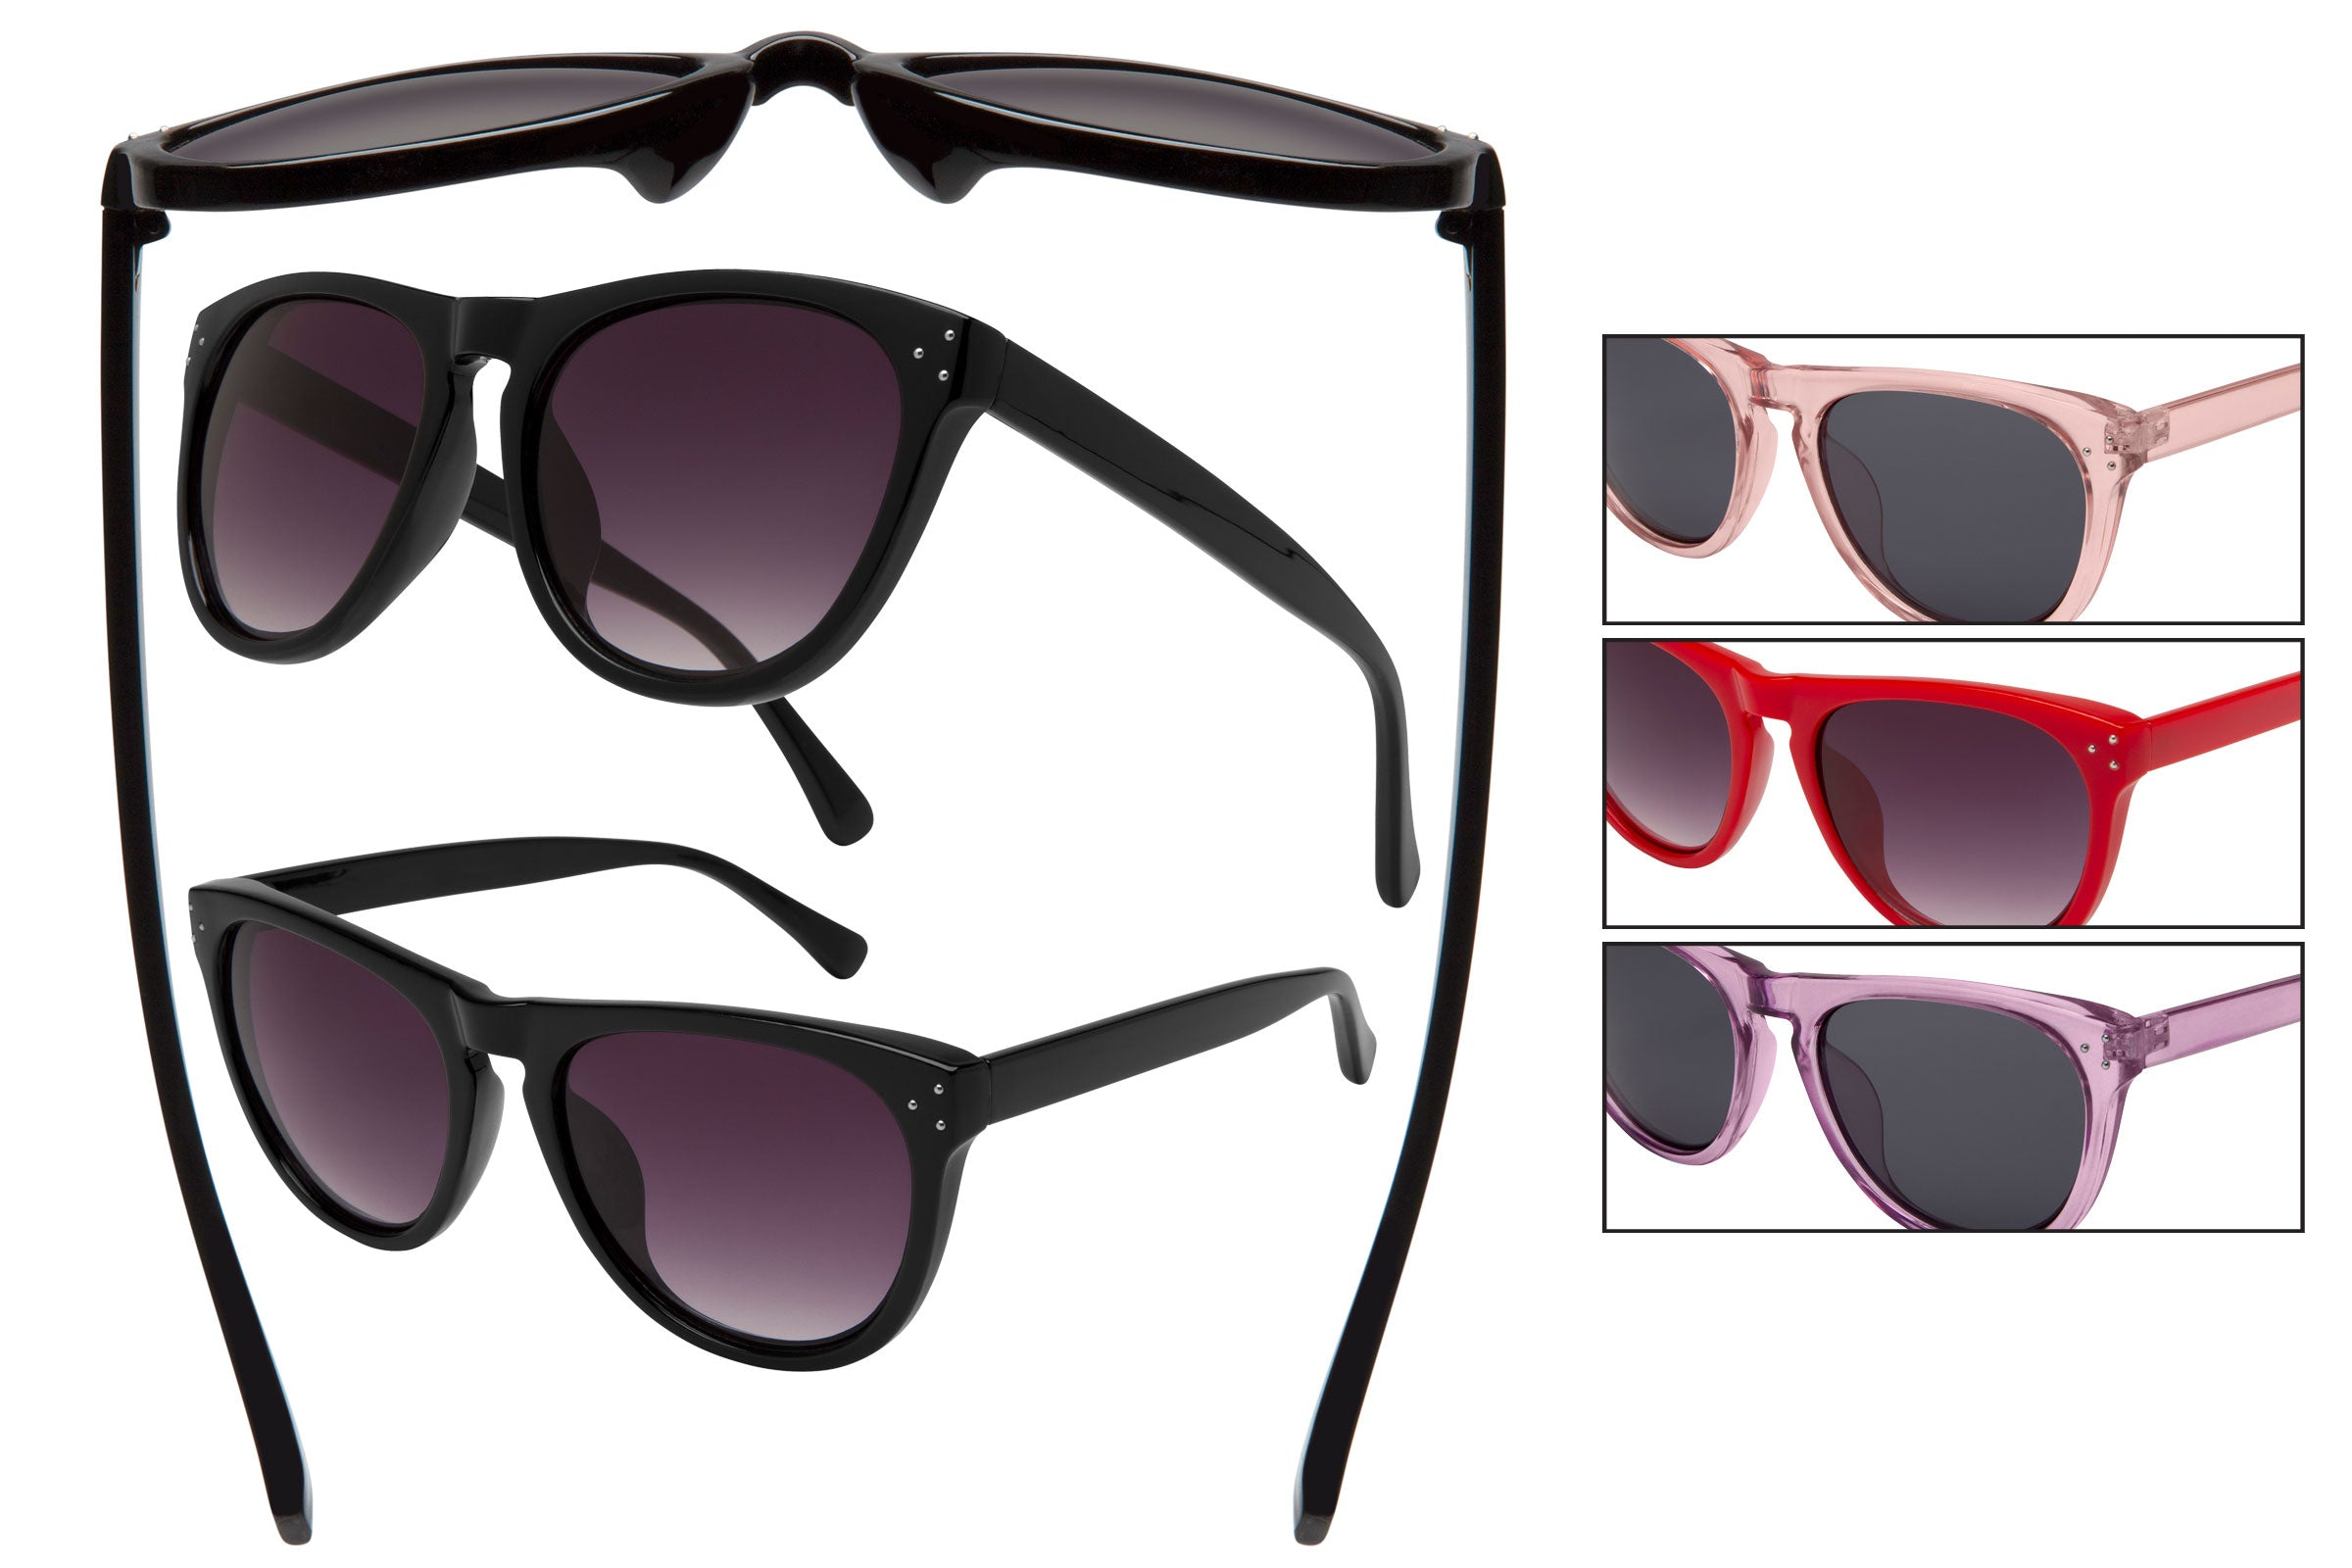 66107 - Vox Women's Fashion Sunglasses